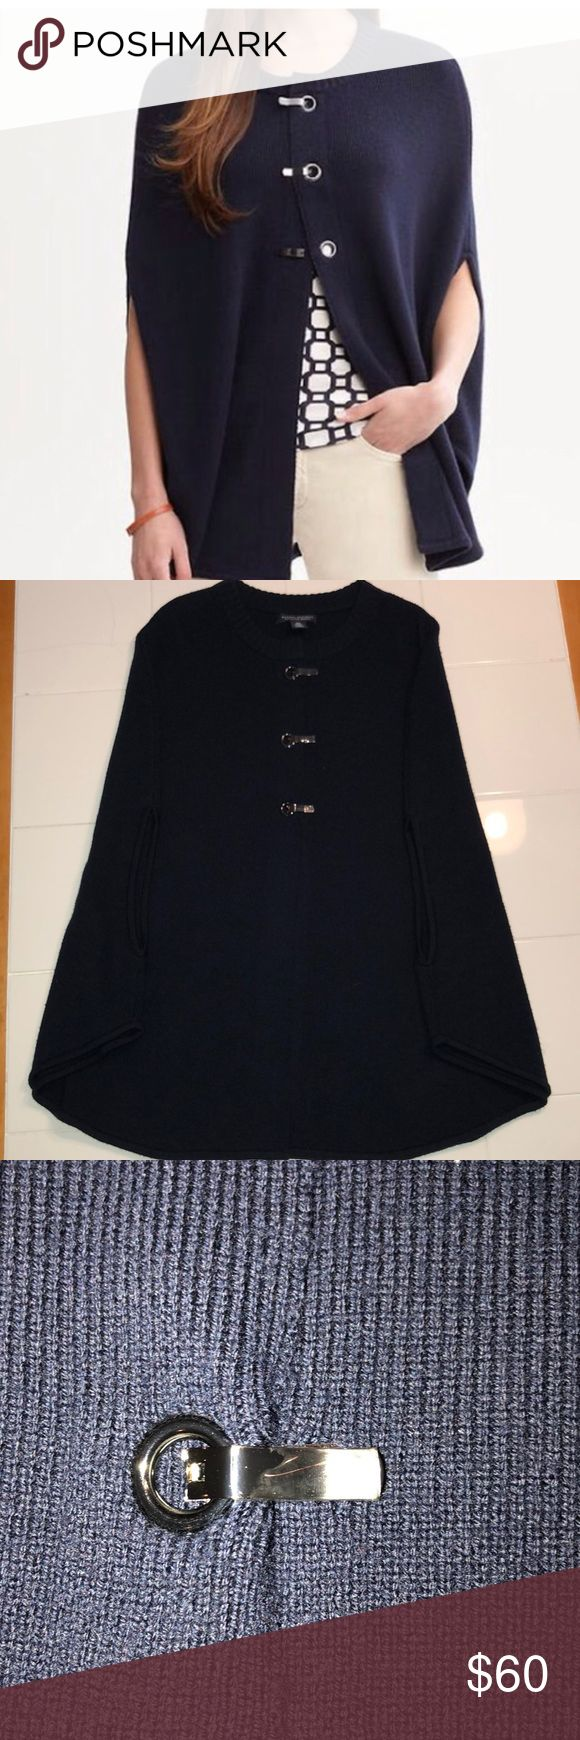 NWOT Banana Republic Navy Cape Poncho Navy extra fine merino wool cape sweater with gunmetal grommets with protective plastic still on. Never been worn. Banana Republic Sweaters Shrugs & Ponchos